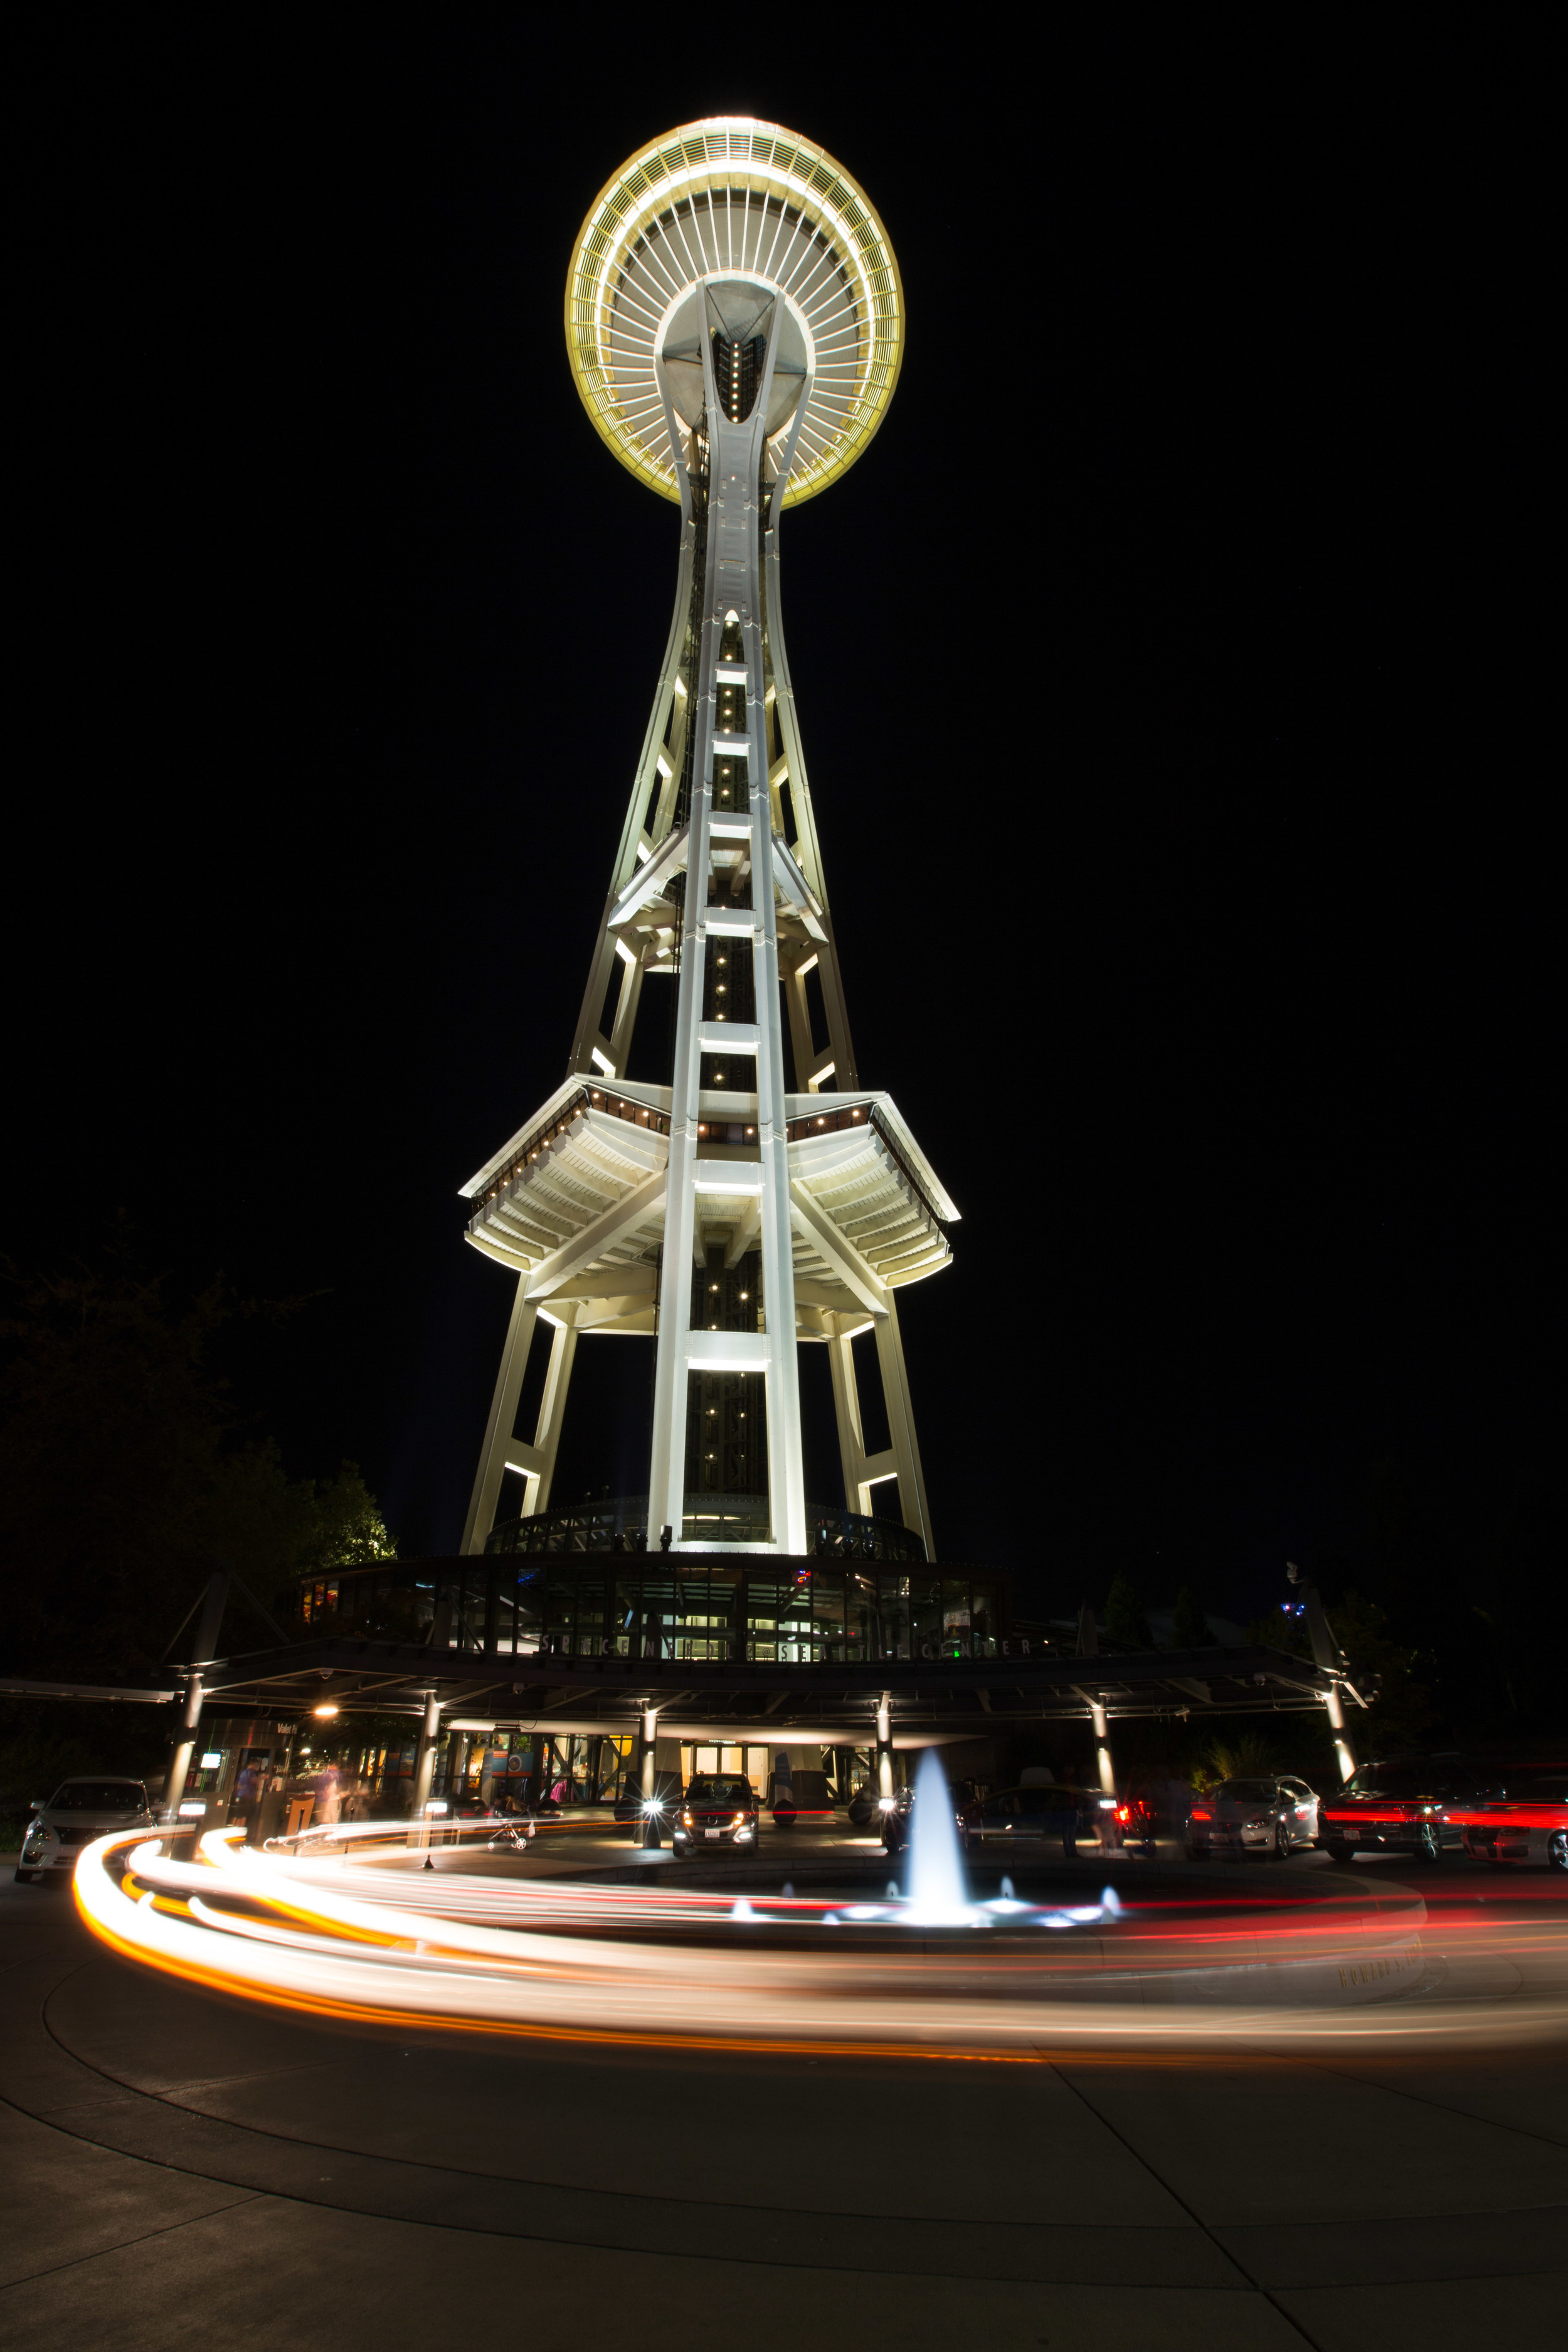 The AV was set to 20 in this photo to ensure I had good focus all the way to the top of the Space Needle without loosing focus on the parking area below.